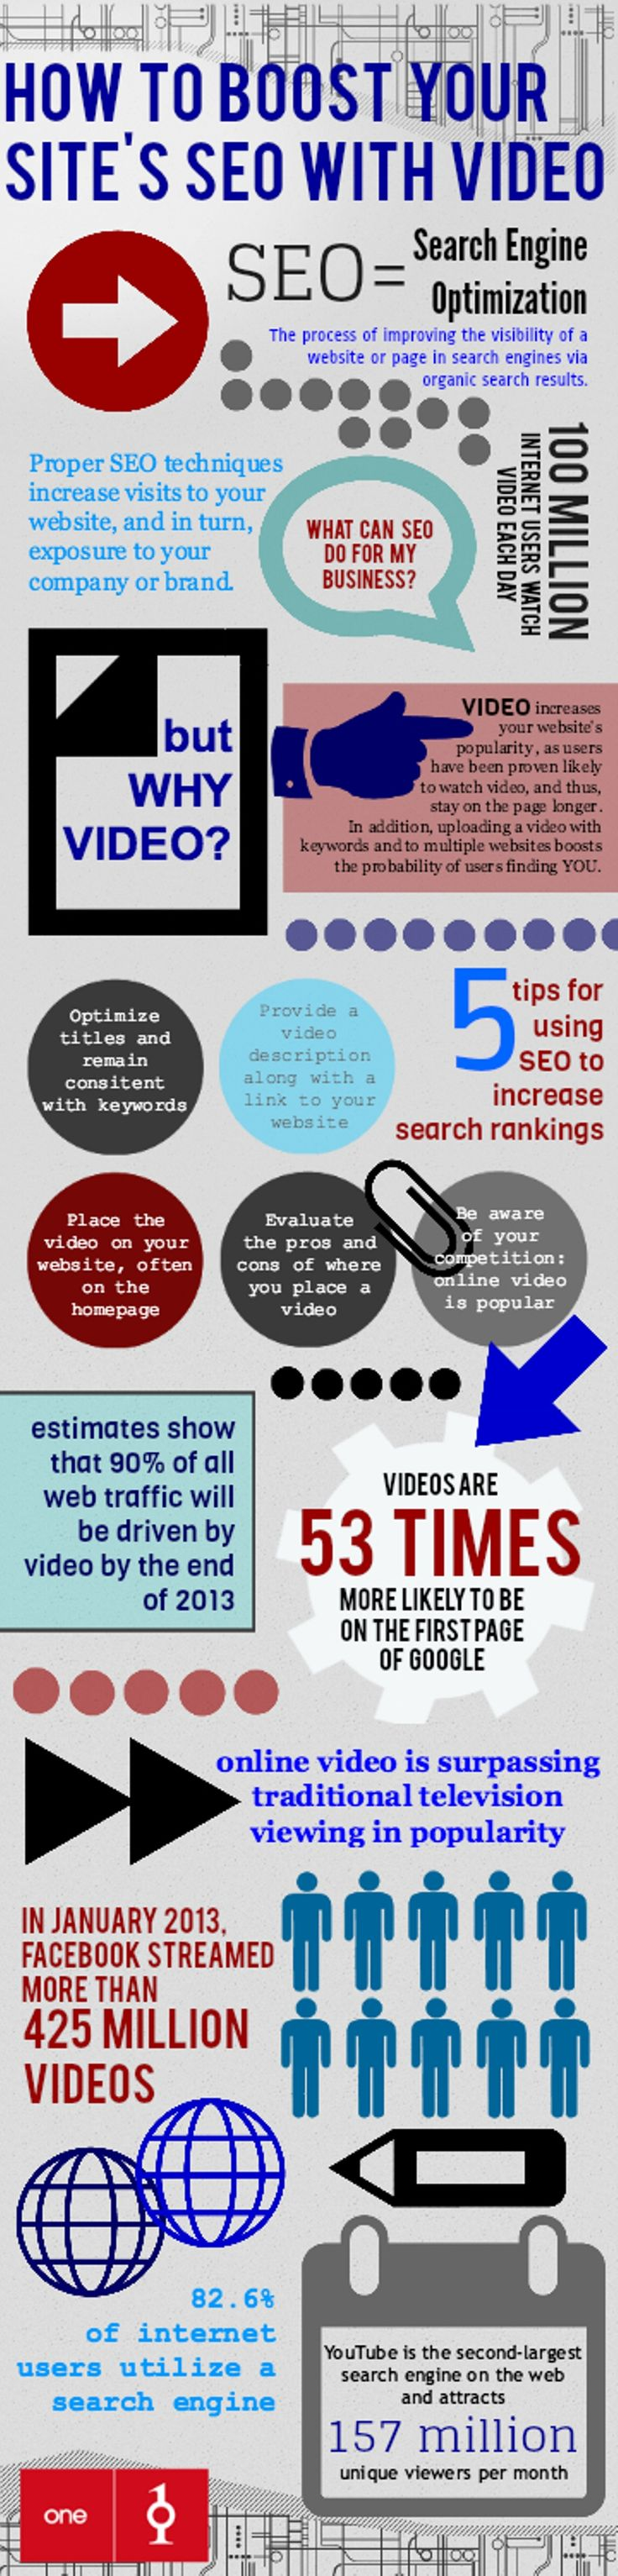 JPG-Boost-your-sites-SEO-with-video-INFOGRAPHIC